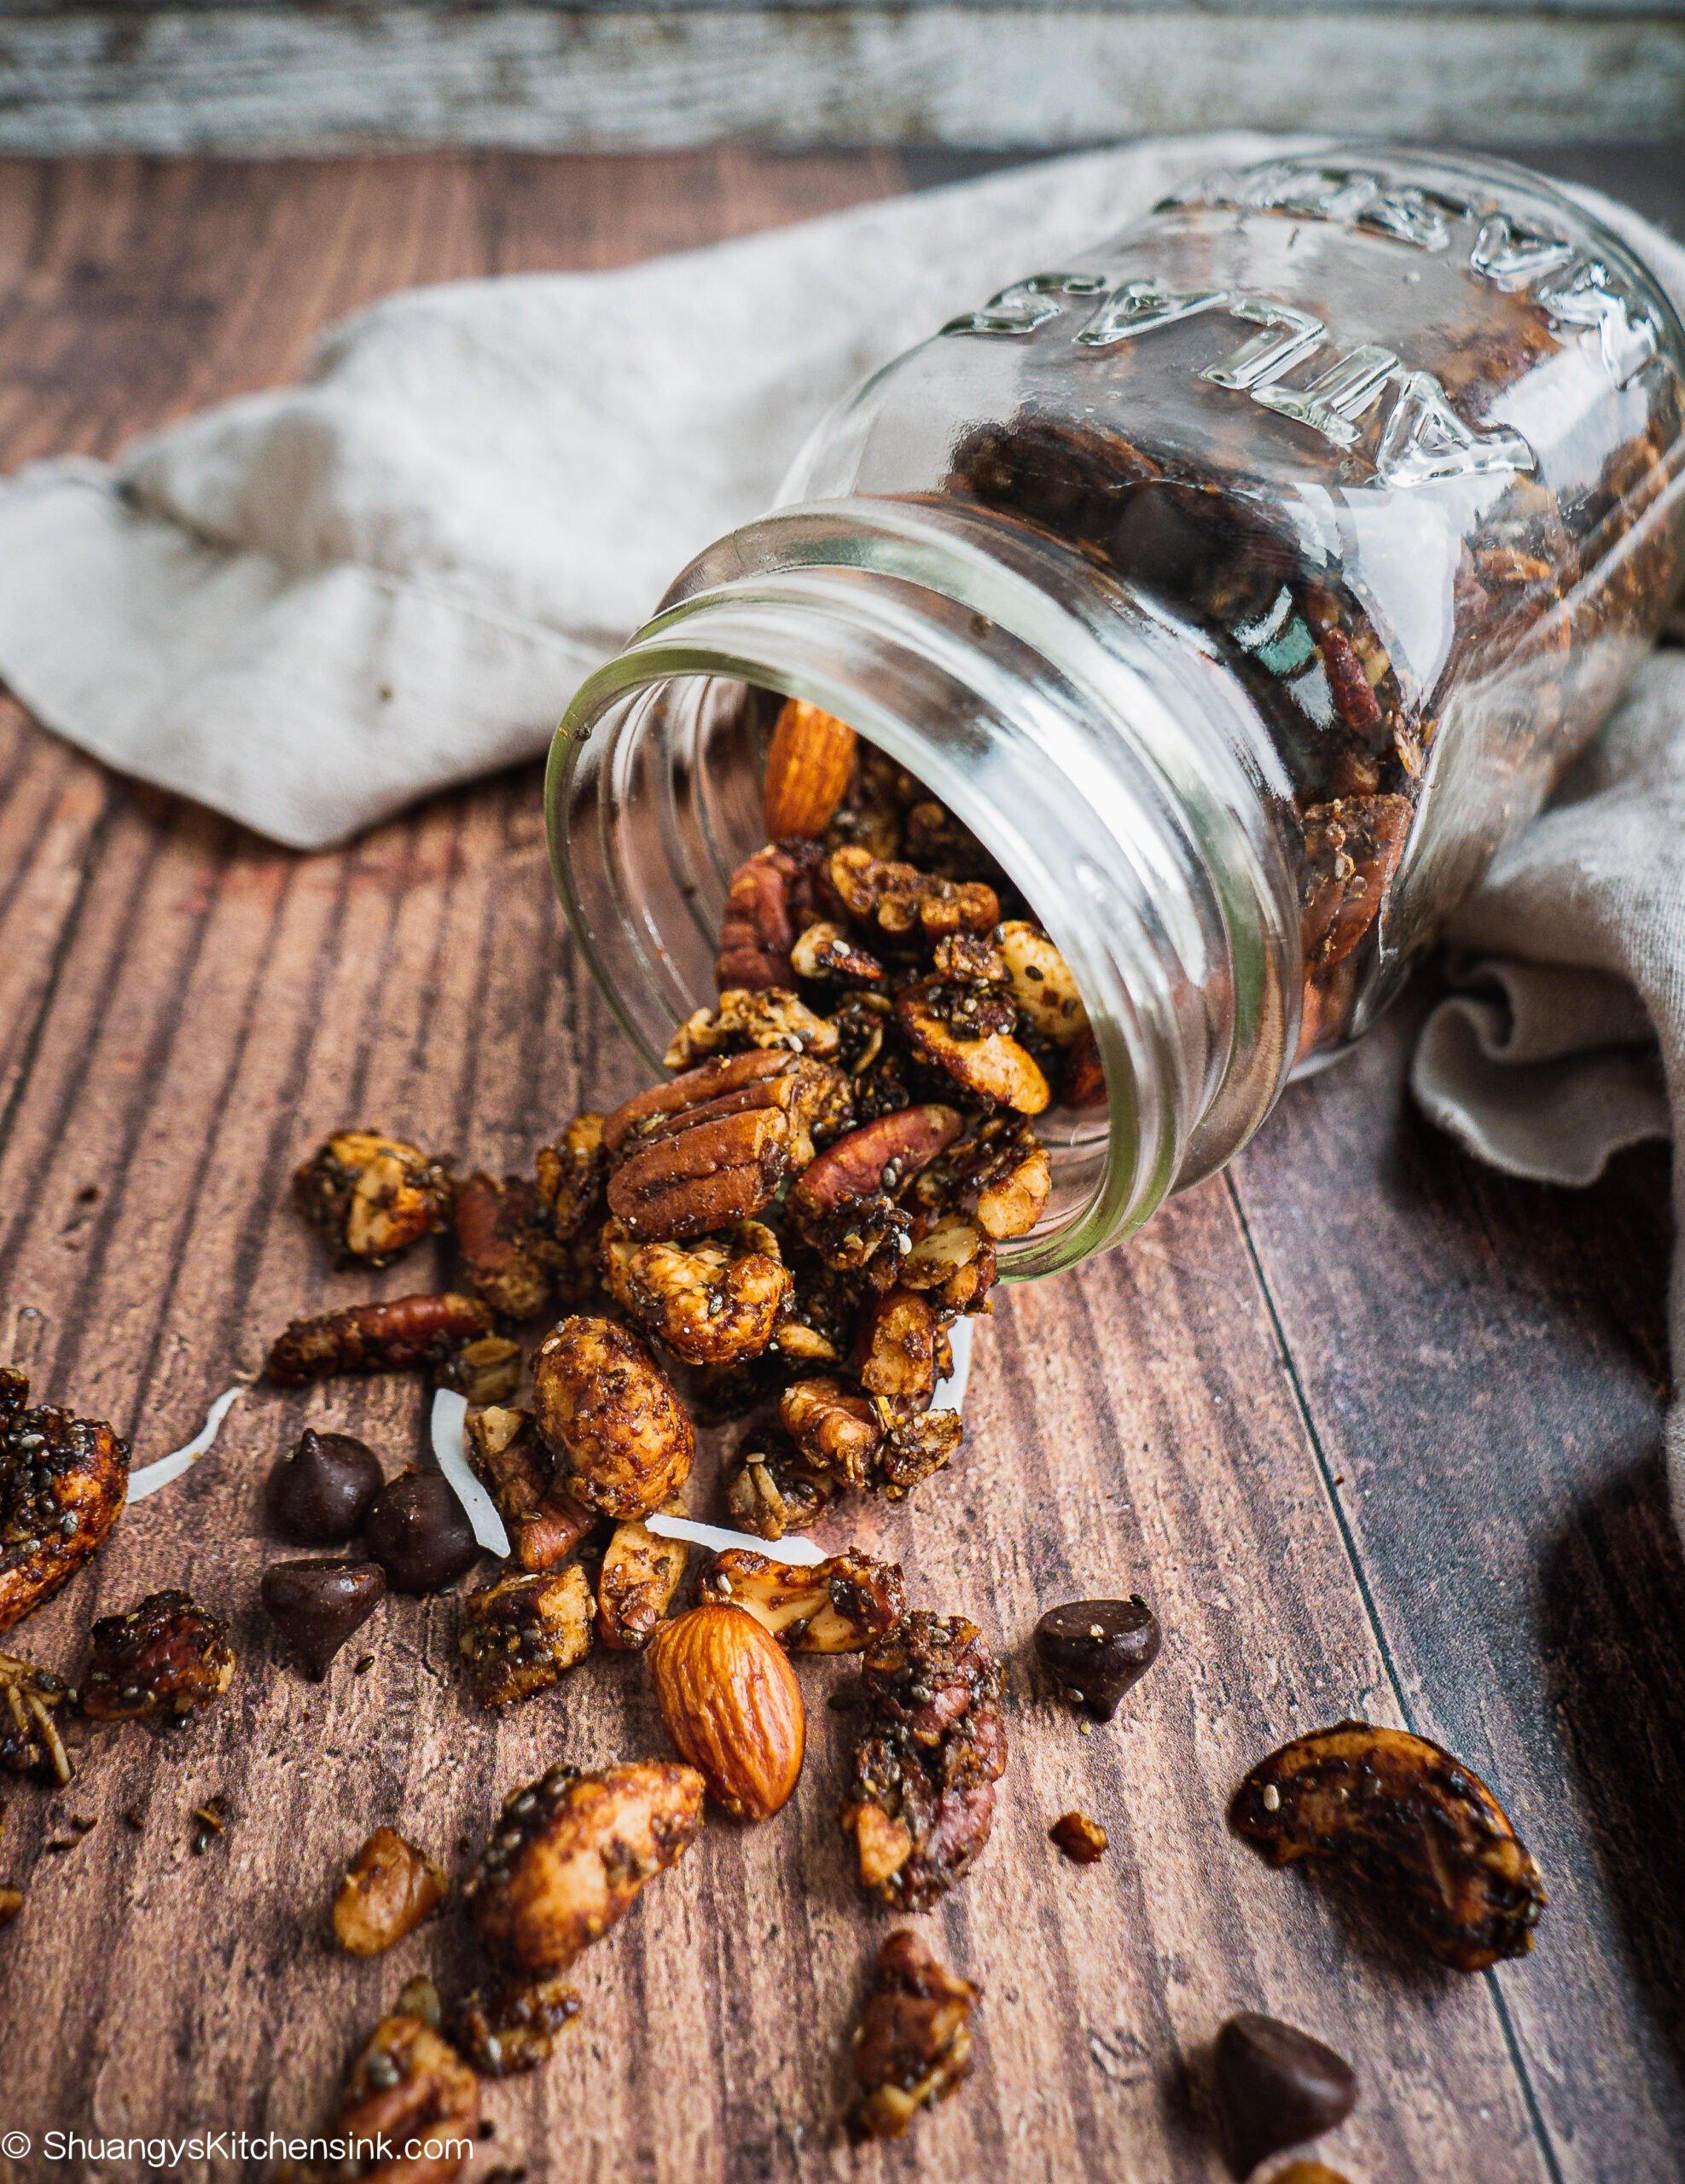 Healthy vegan nut granola spiced with gingerbread spices are coming out from a mason jar that's laying down on a wooden table. there are some shaved coconut and chocolate chips in the table as well.